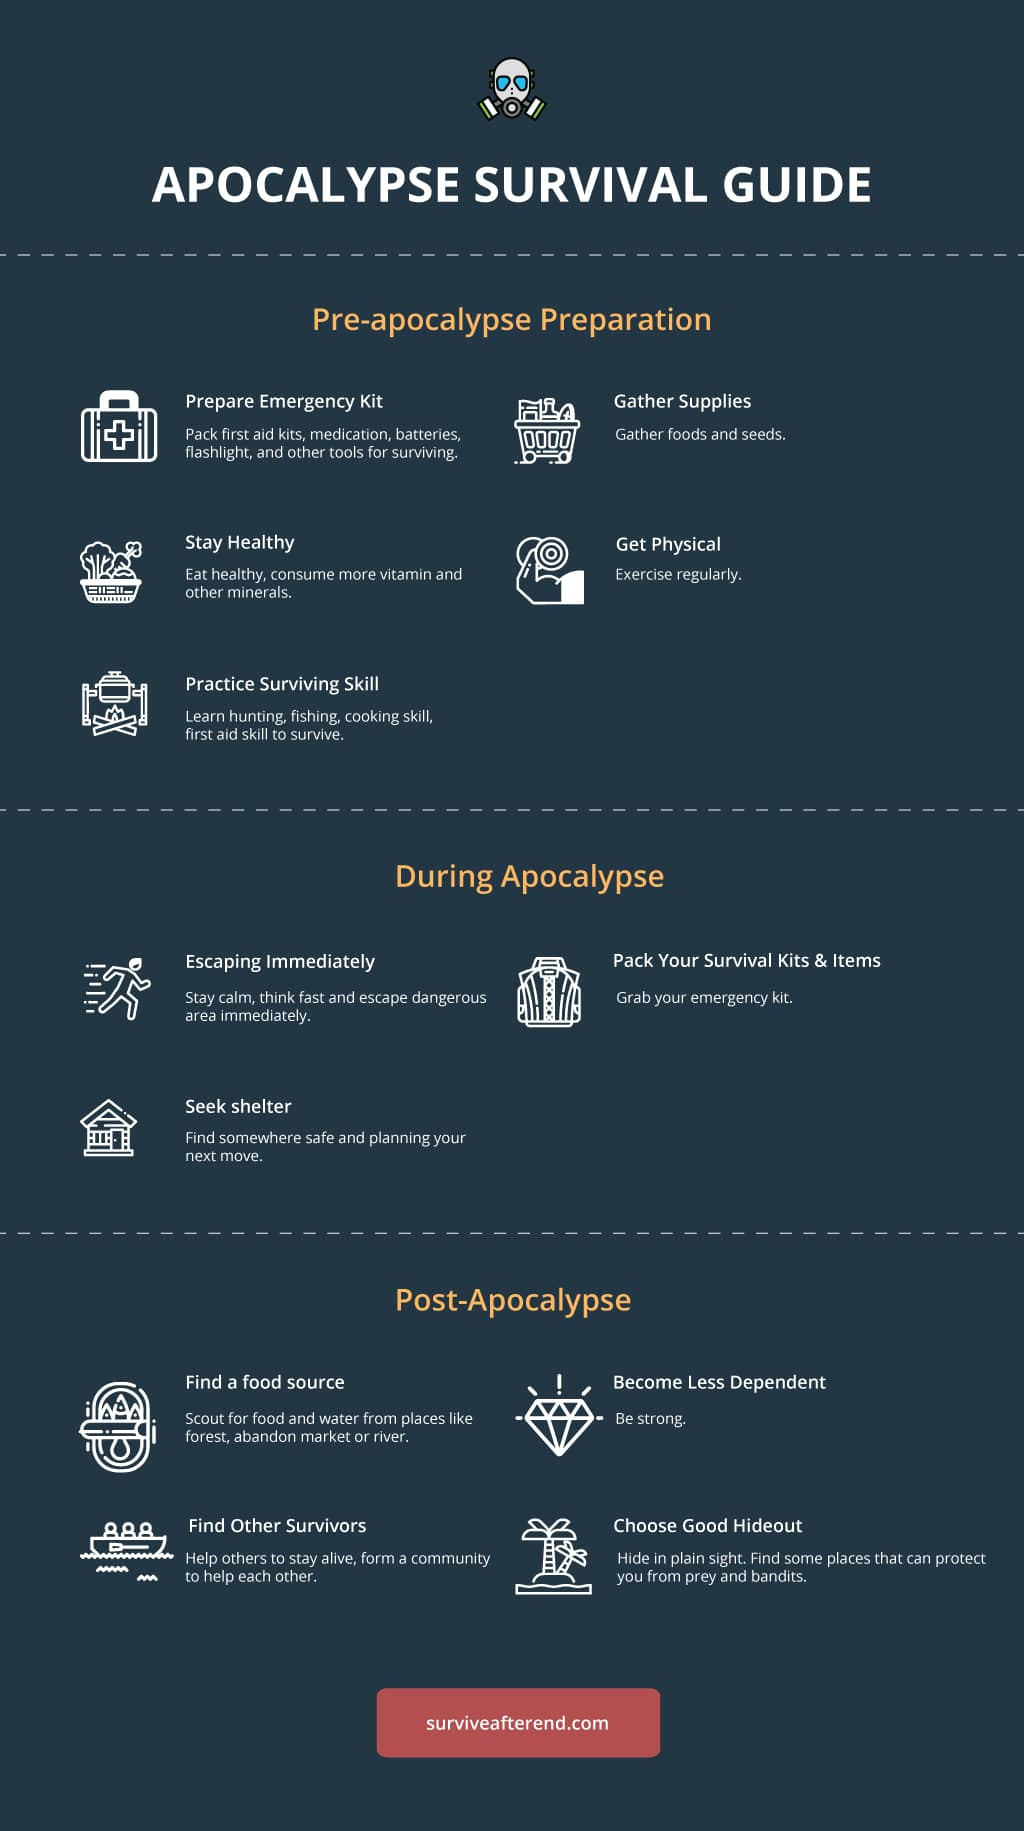 apocalypse survival guide infographic